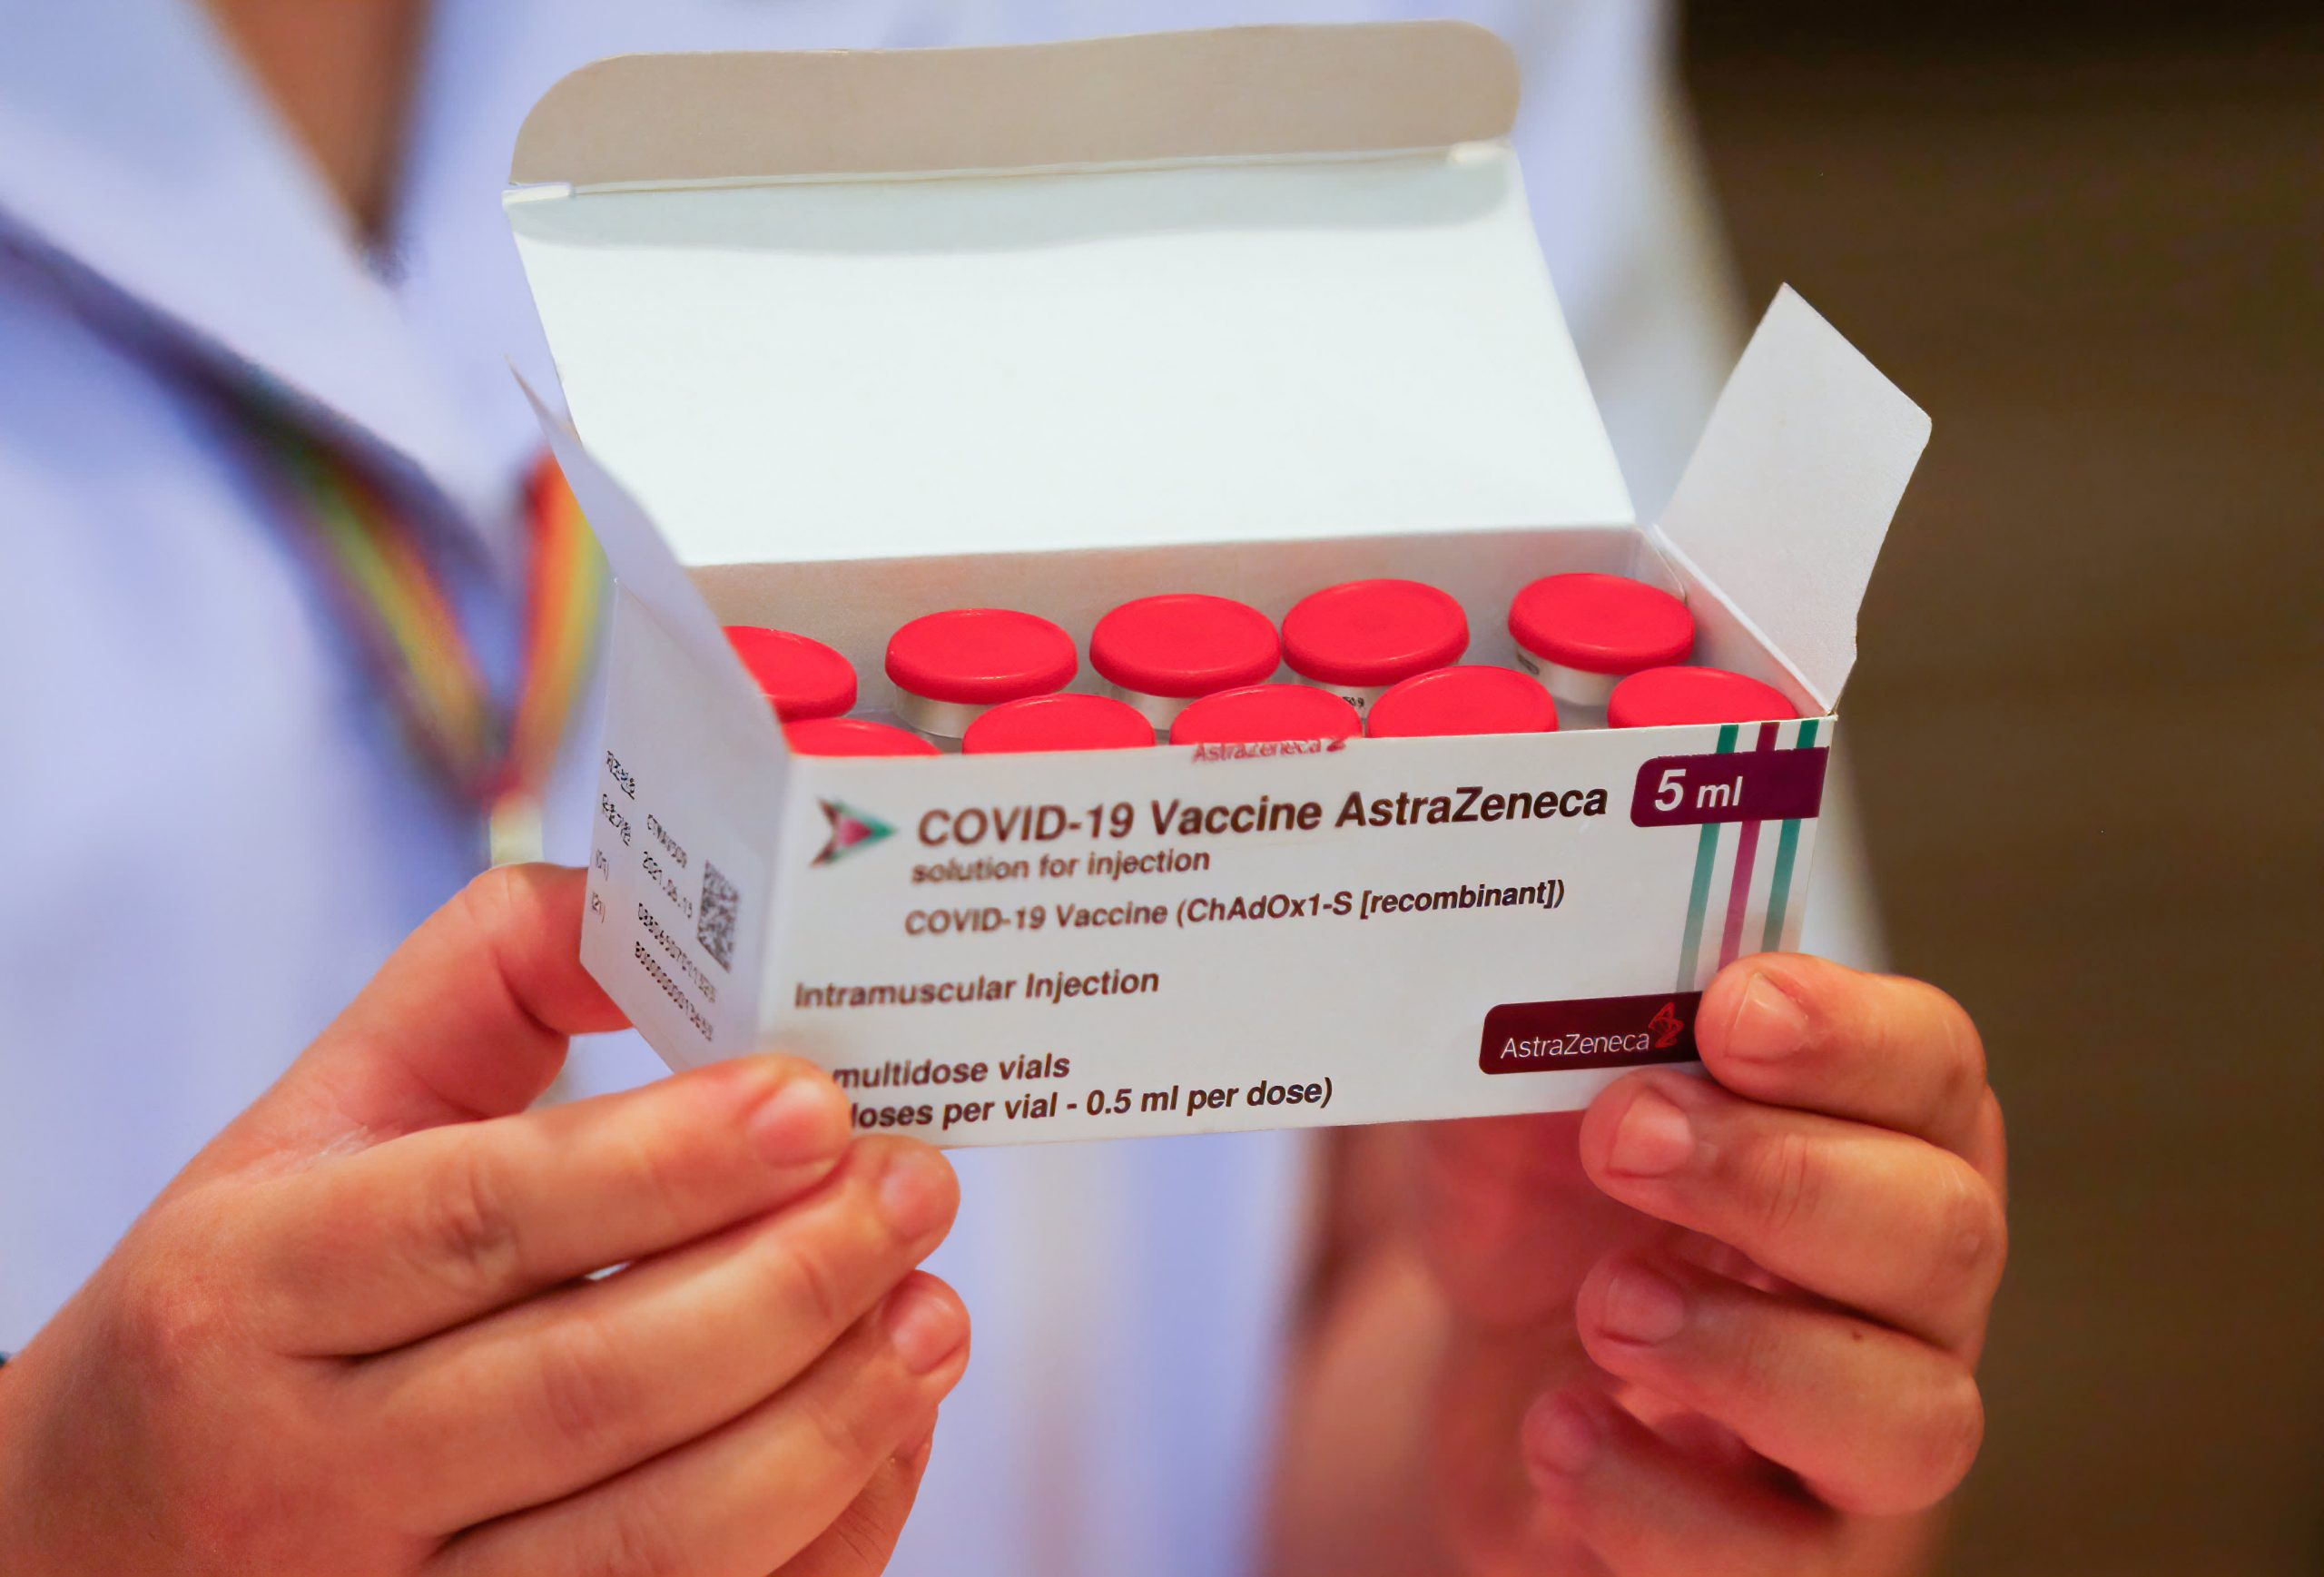 AstraZeneca Covid vaccine will be Thailand's 'principal' shot, says health minister